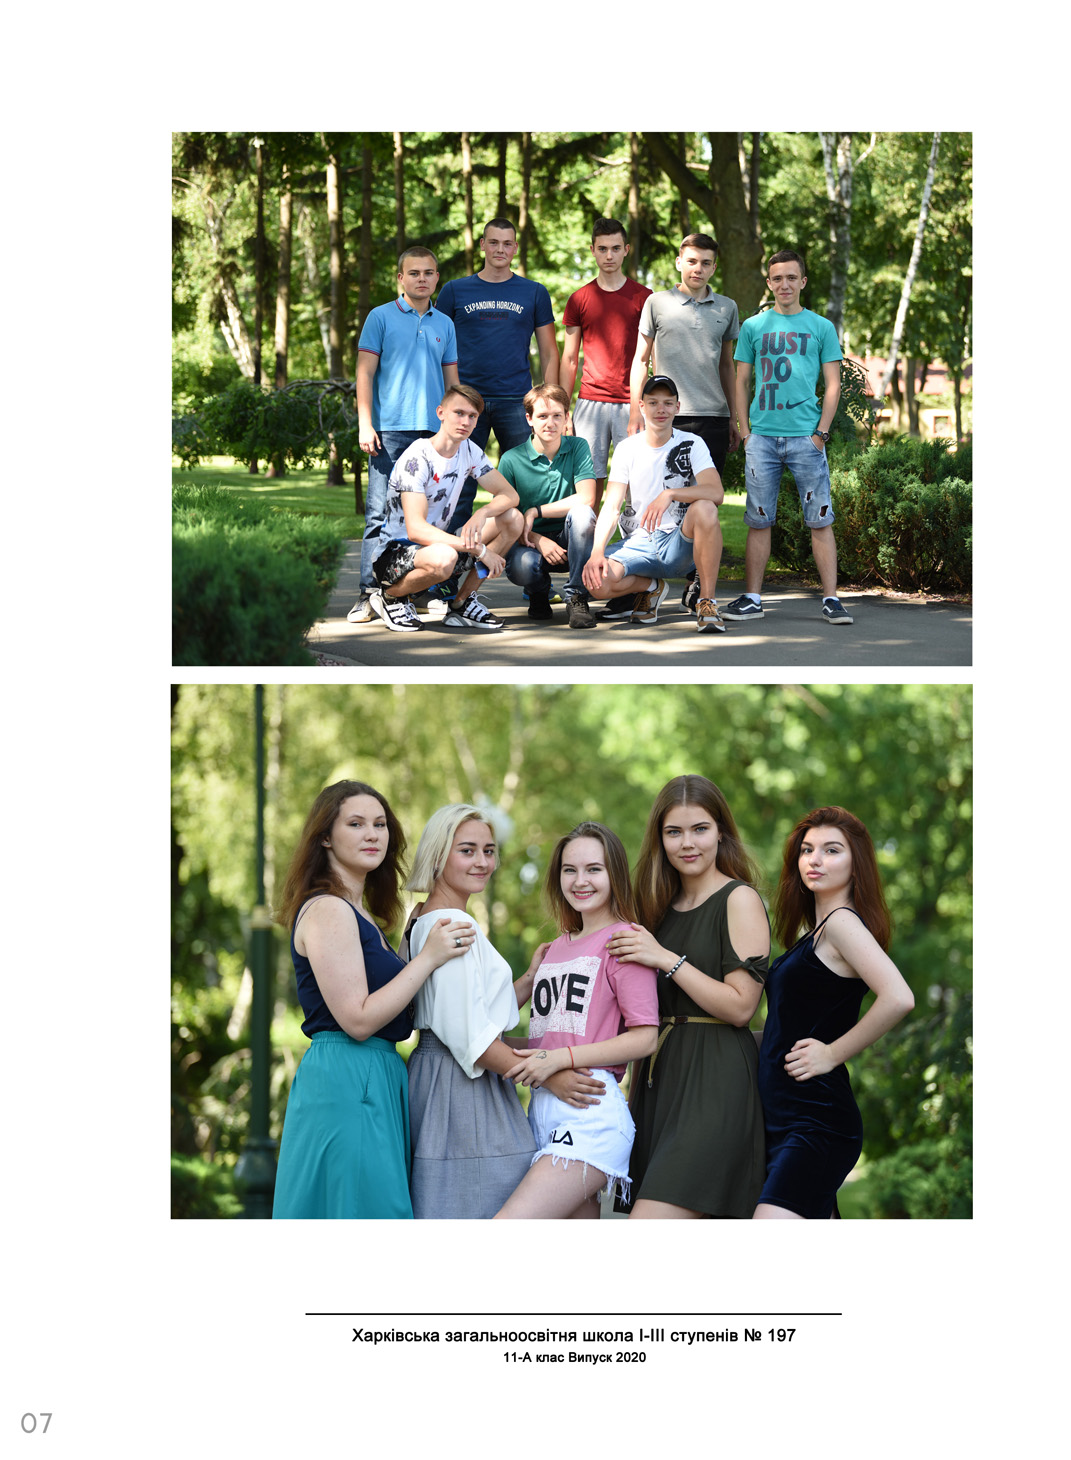 https://school-photo.com.ua/wp-content/uploads/2019/09/07-copy.jpg